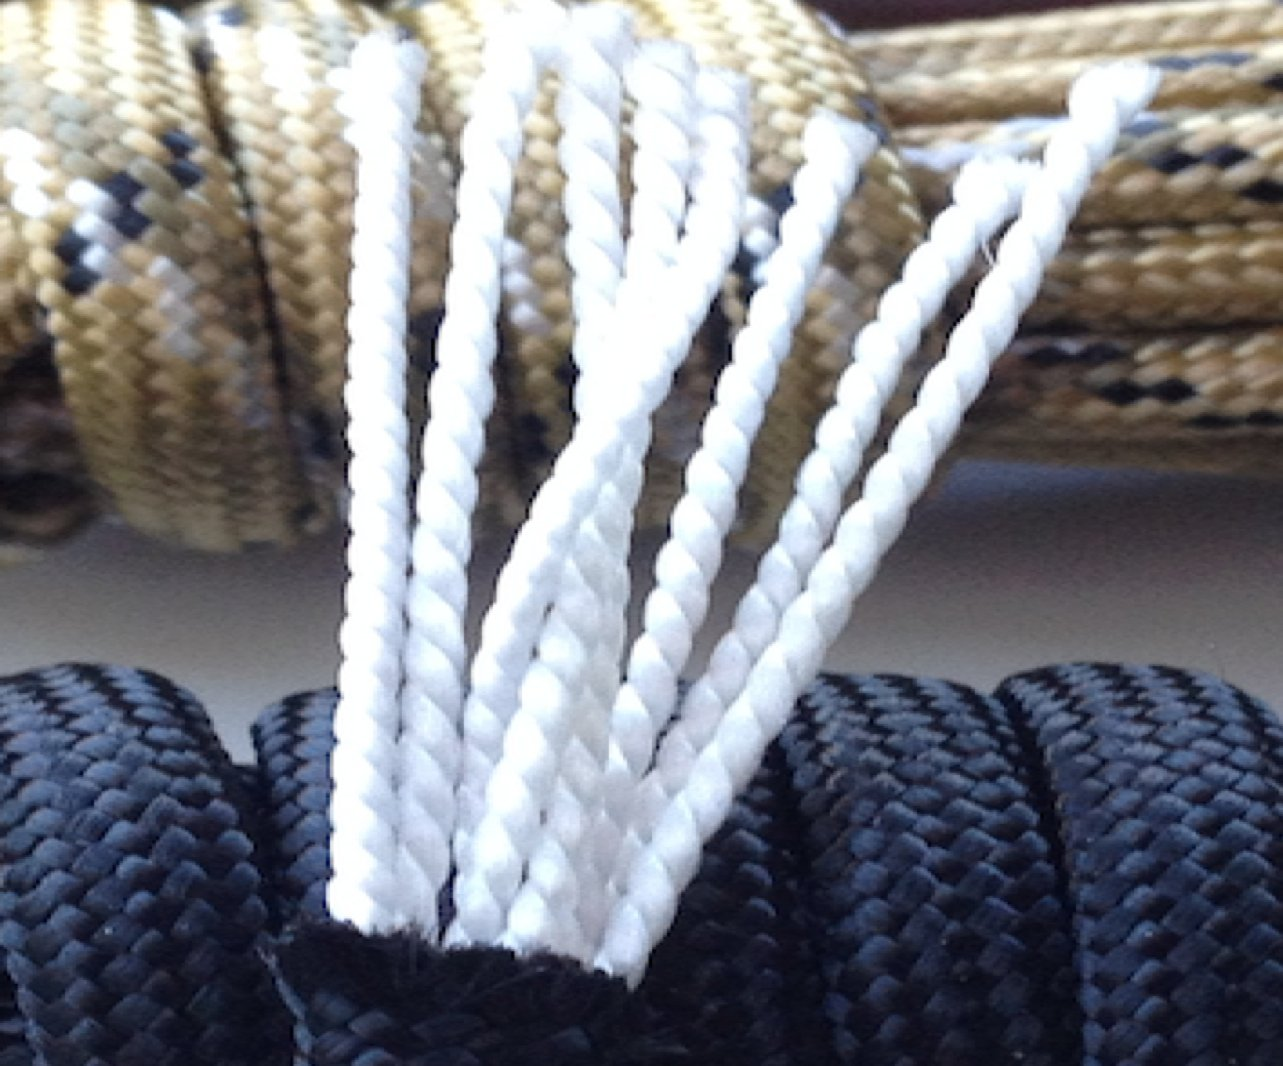 X-CORDS Paracord 850 Lb Stronger Than 550 and 750 Made by Us Government Certified Contractor (100' Black ON Spool) by X-CORDS (Image #5)